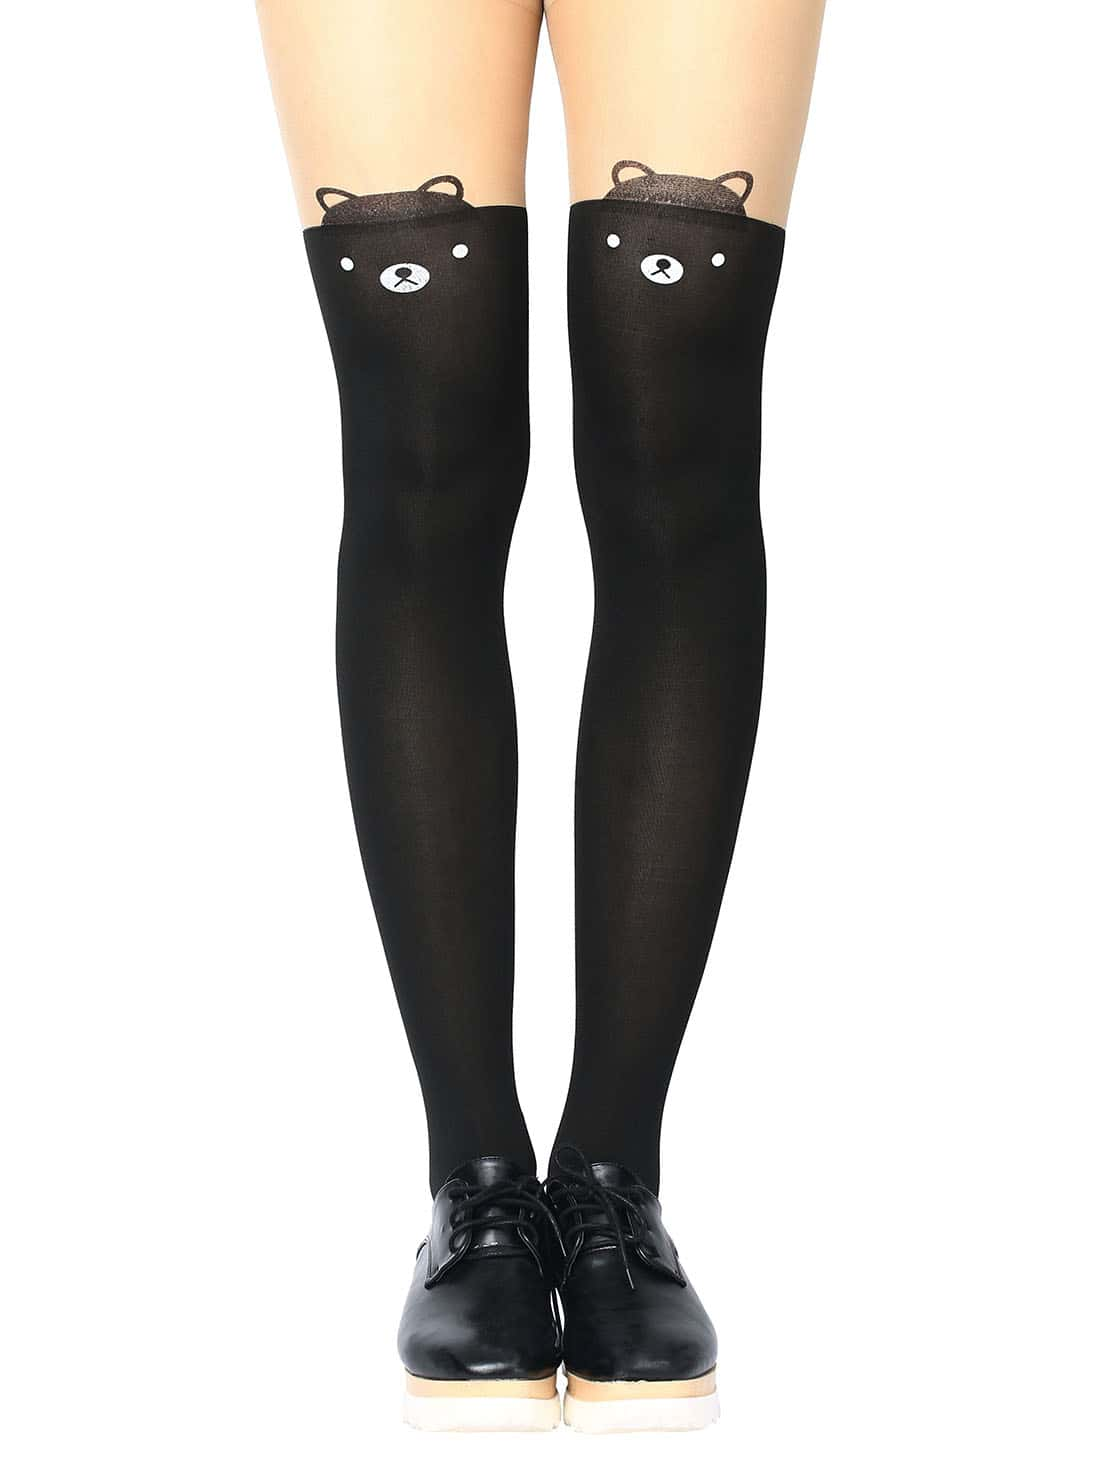 Bear Print Tights